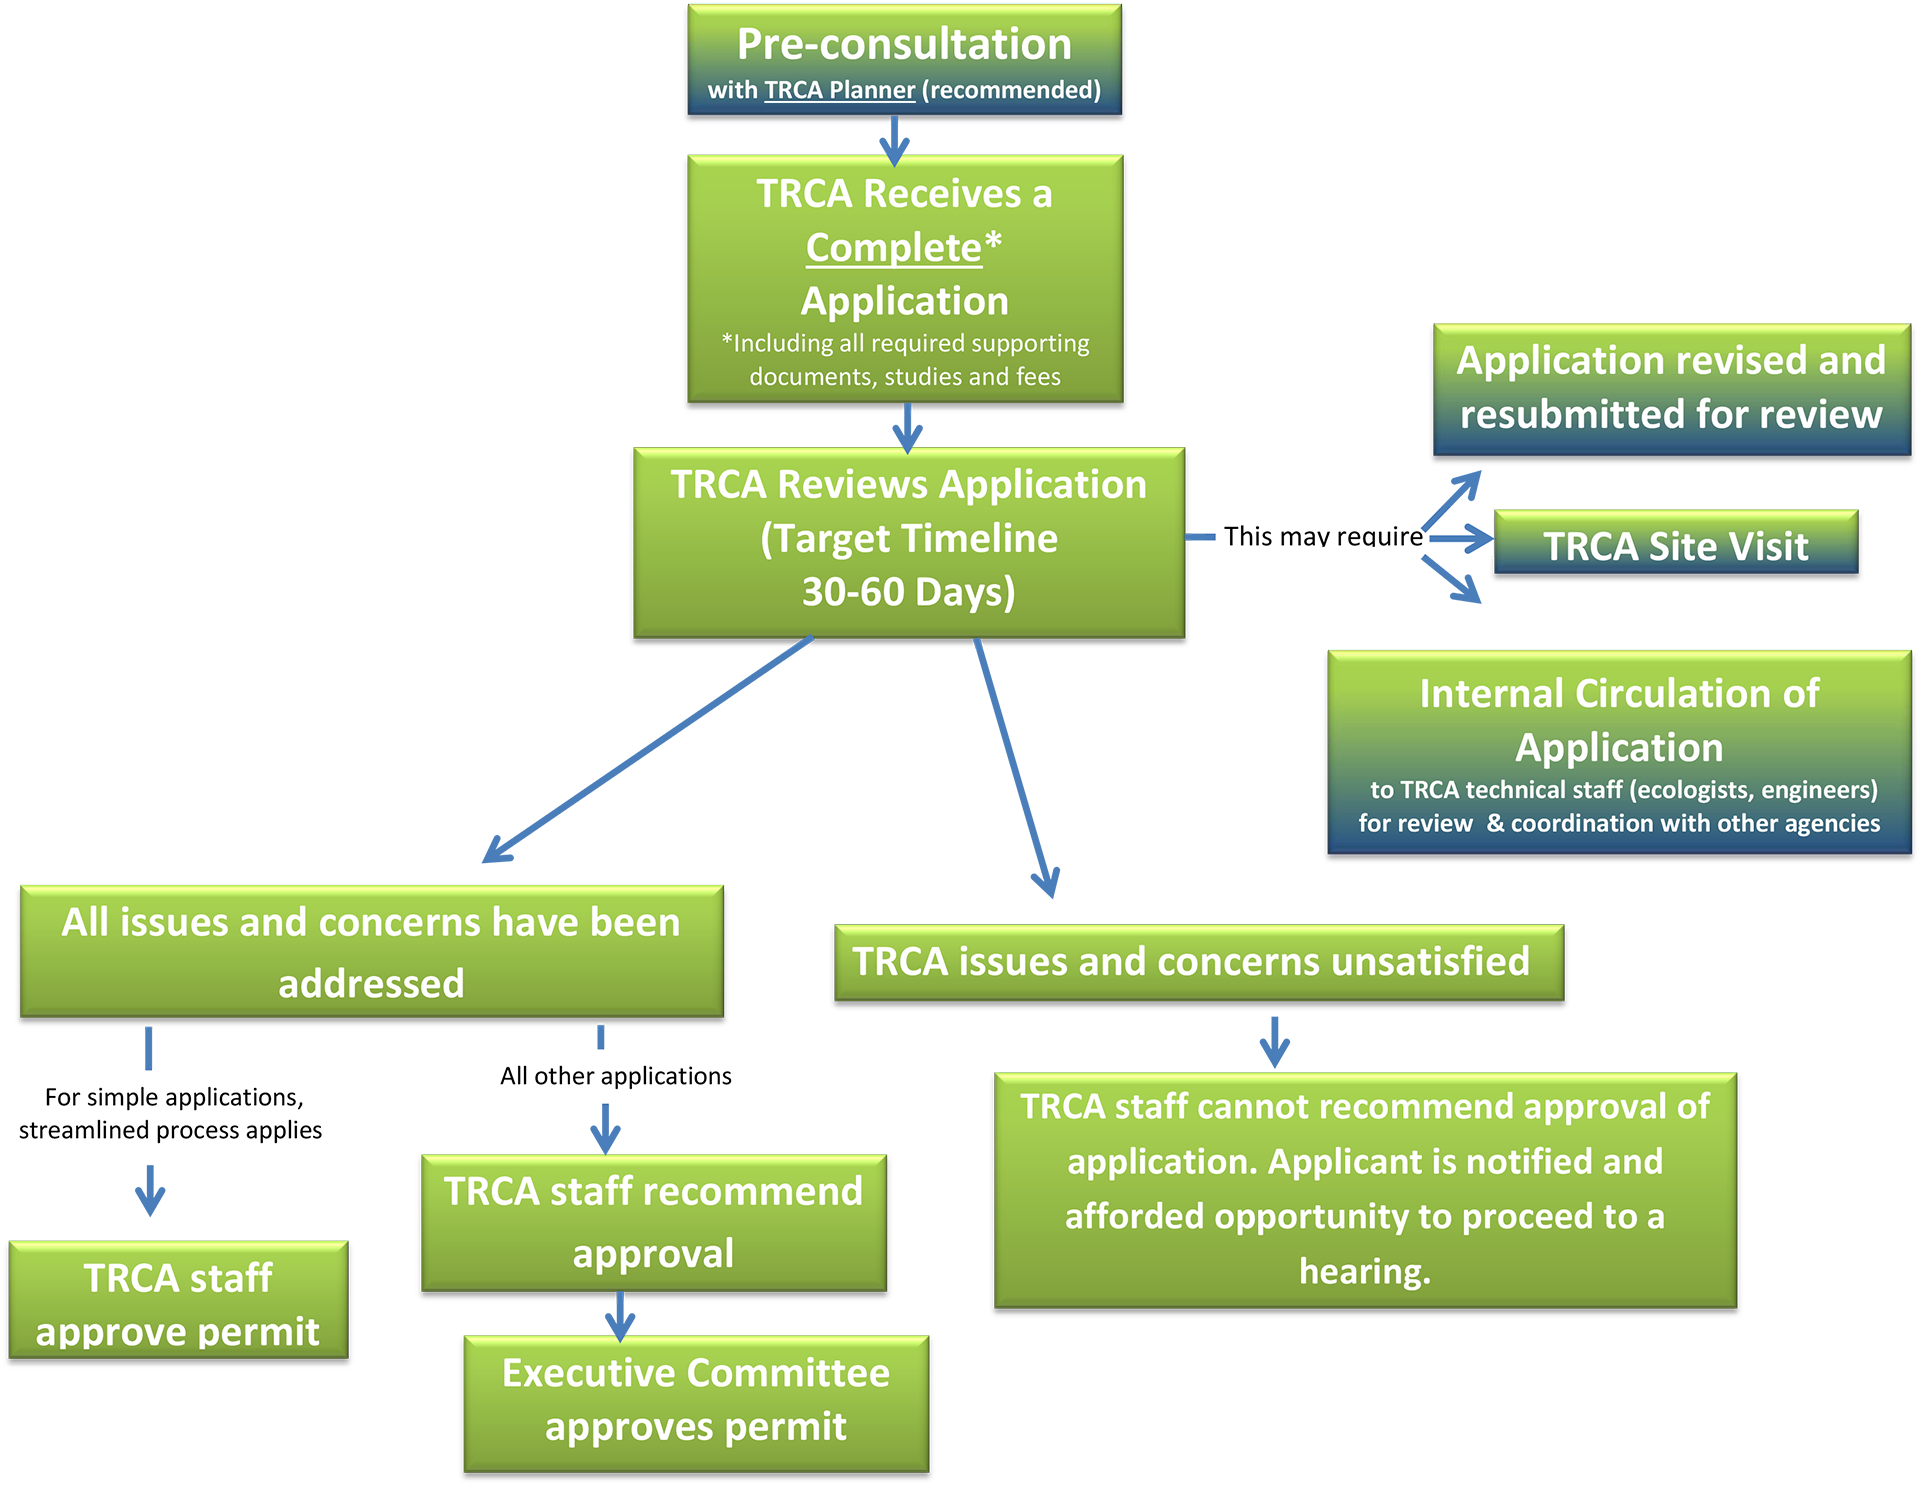 Diagram of the TRCA planning process